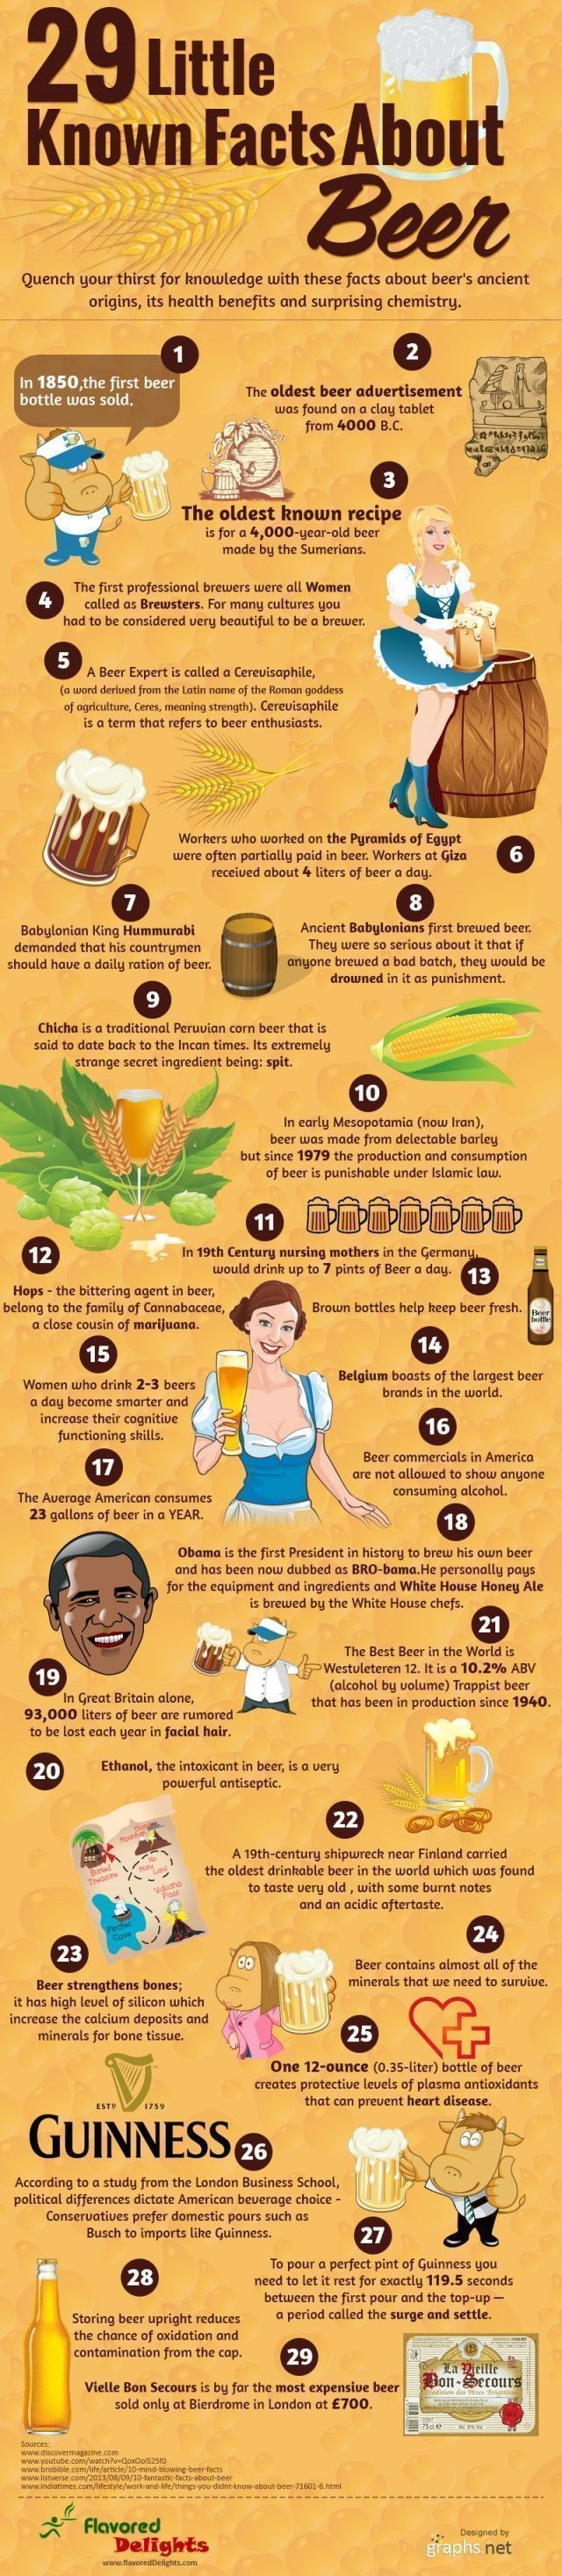 29 Unusual Facts About #Beer   #Infographic #beerfacts